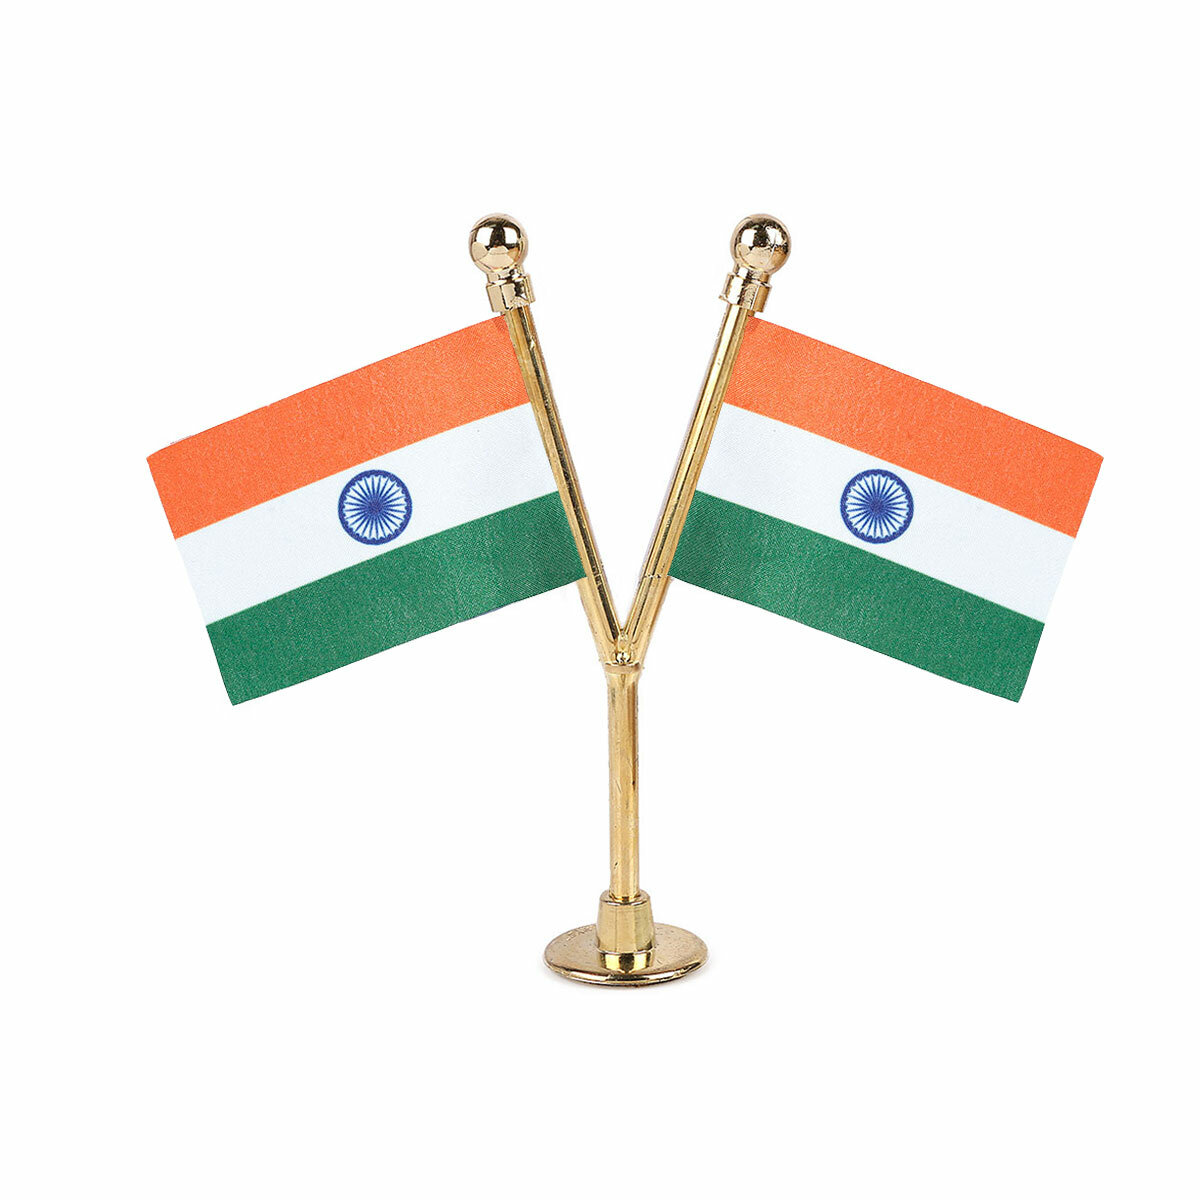 dual indian car dashboard flags with a gold plated plastic stand / base